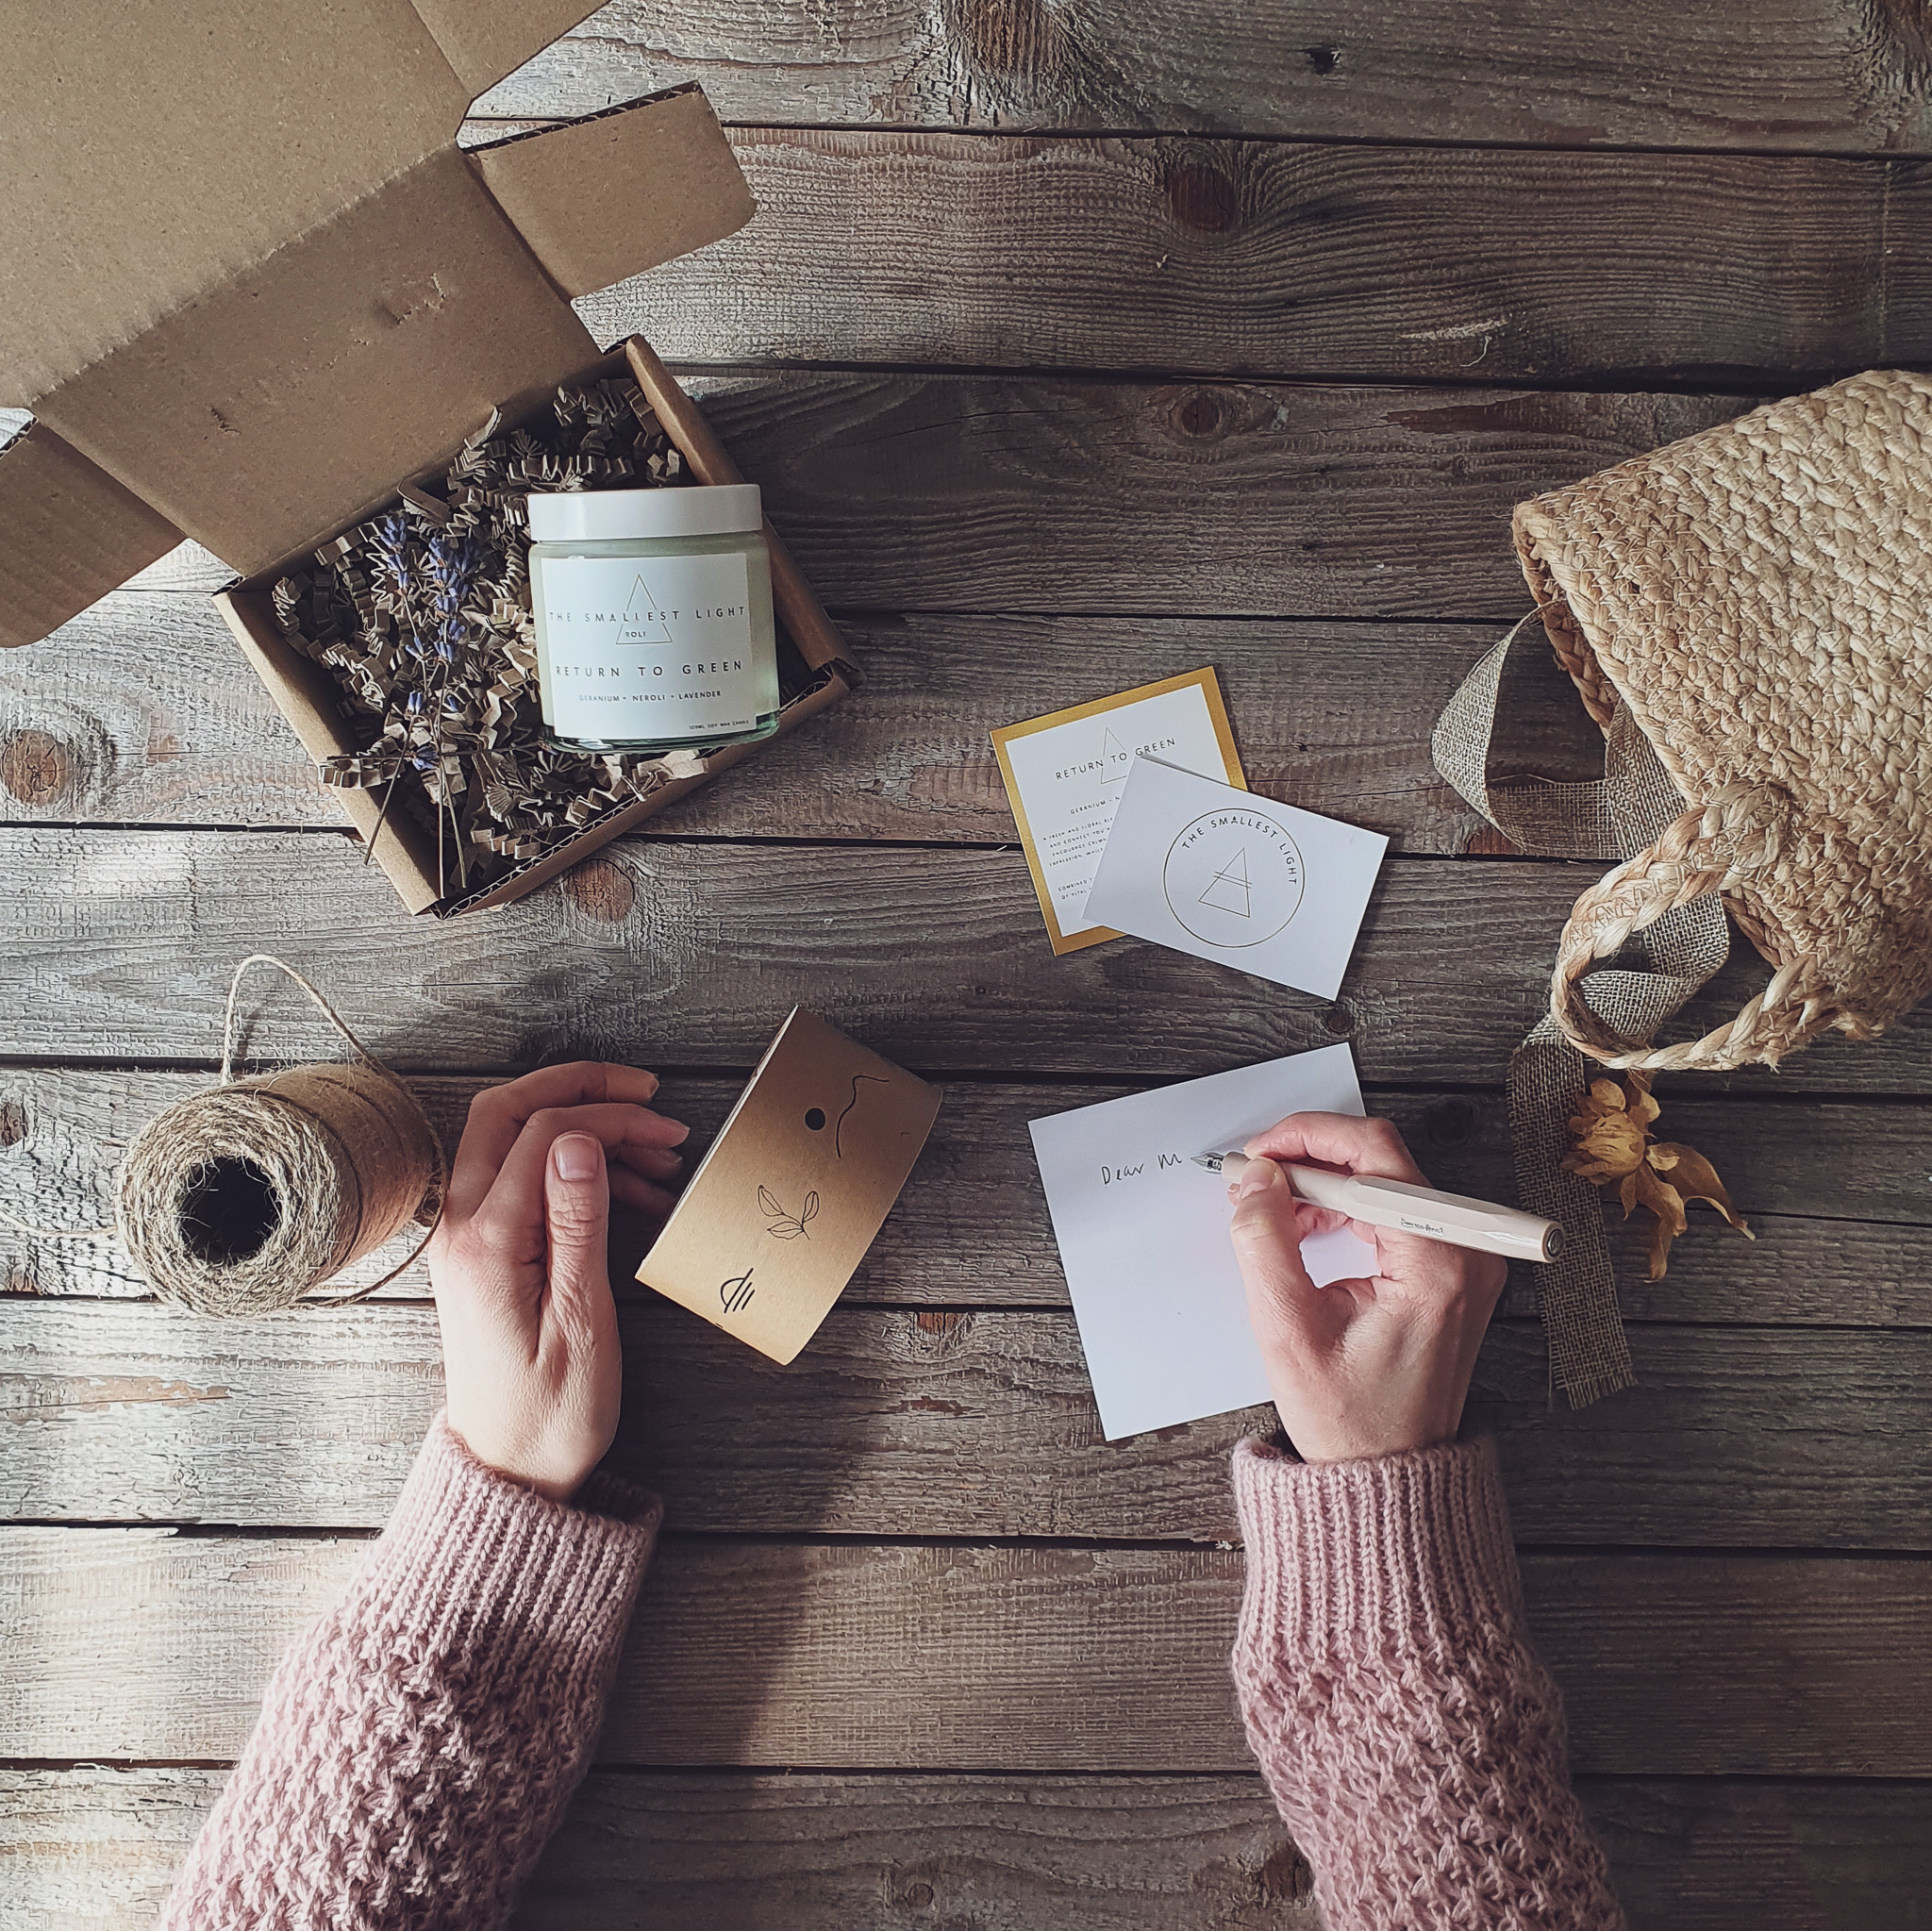 Candle Subscription Package from The Smallest Light